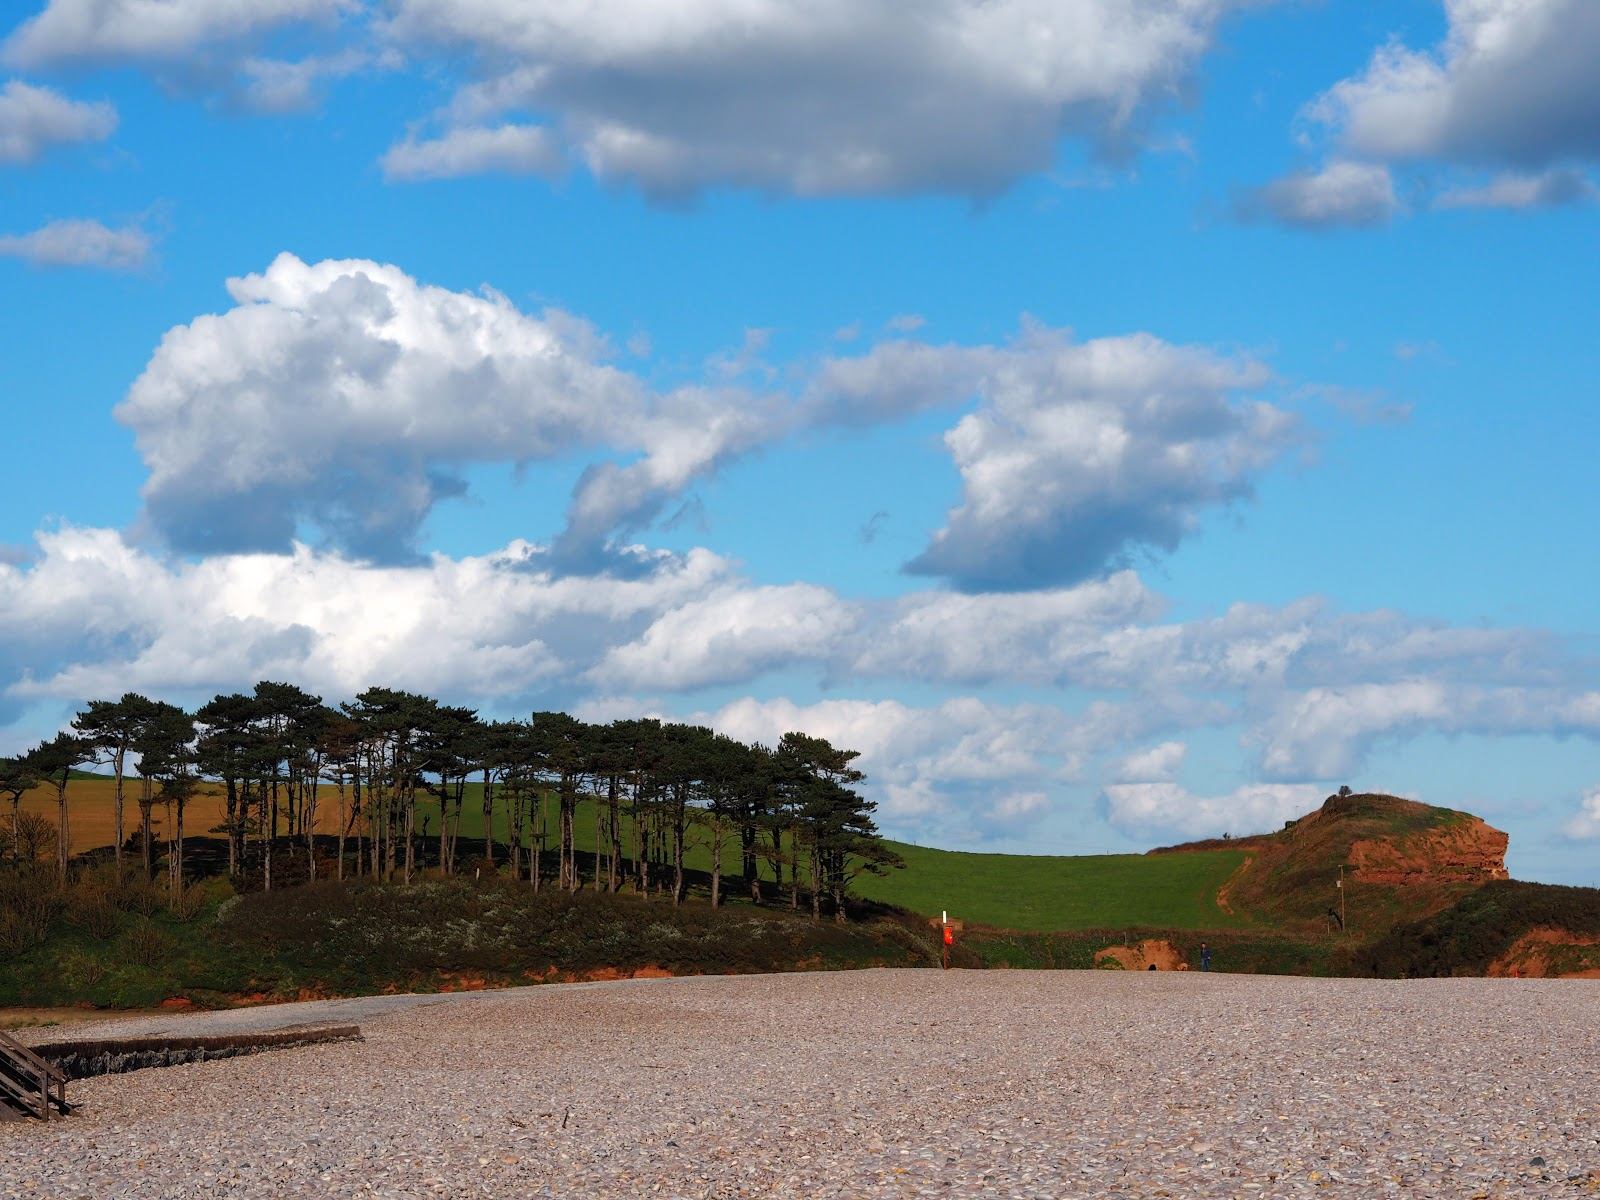 Pebble Budleigh Beach with trees and Jurassic Coast behind, Devon